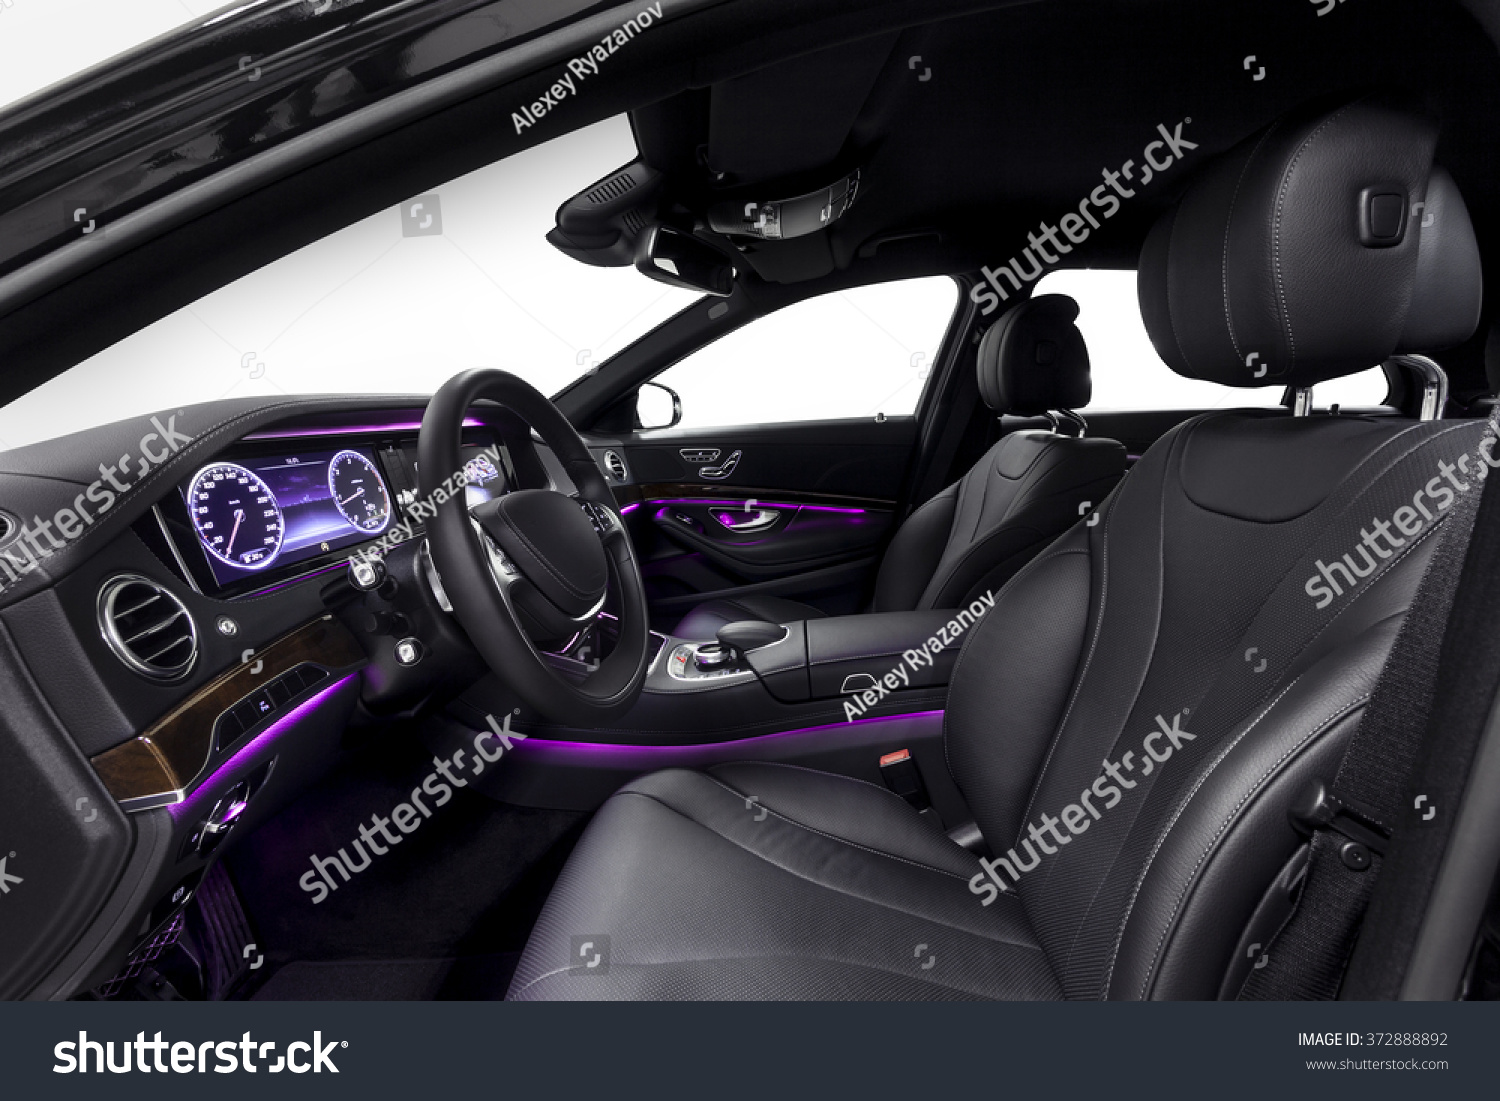 royalty free car inside driver seat interior of 372888892 stock photo. Black Bedroom Furniture Sets. Home Design Ideas